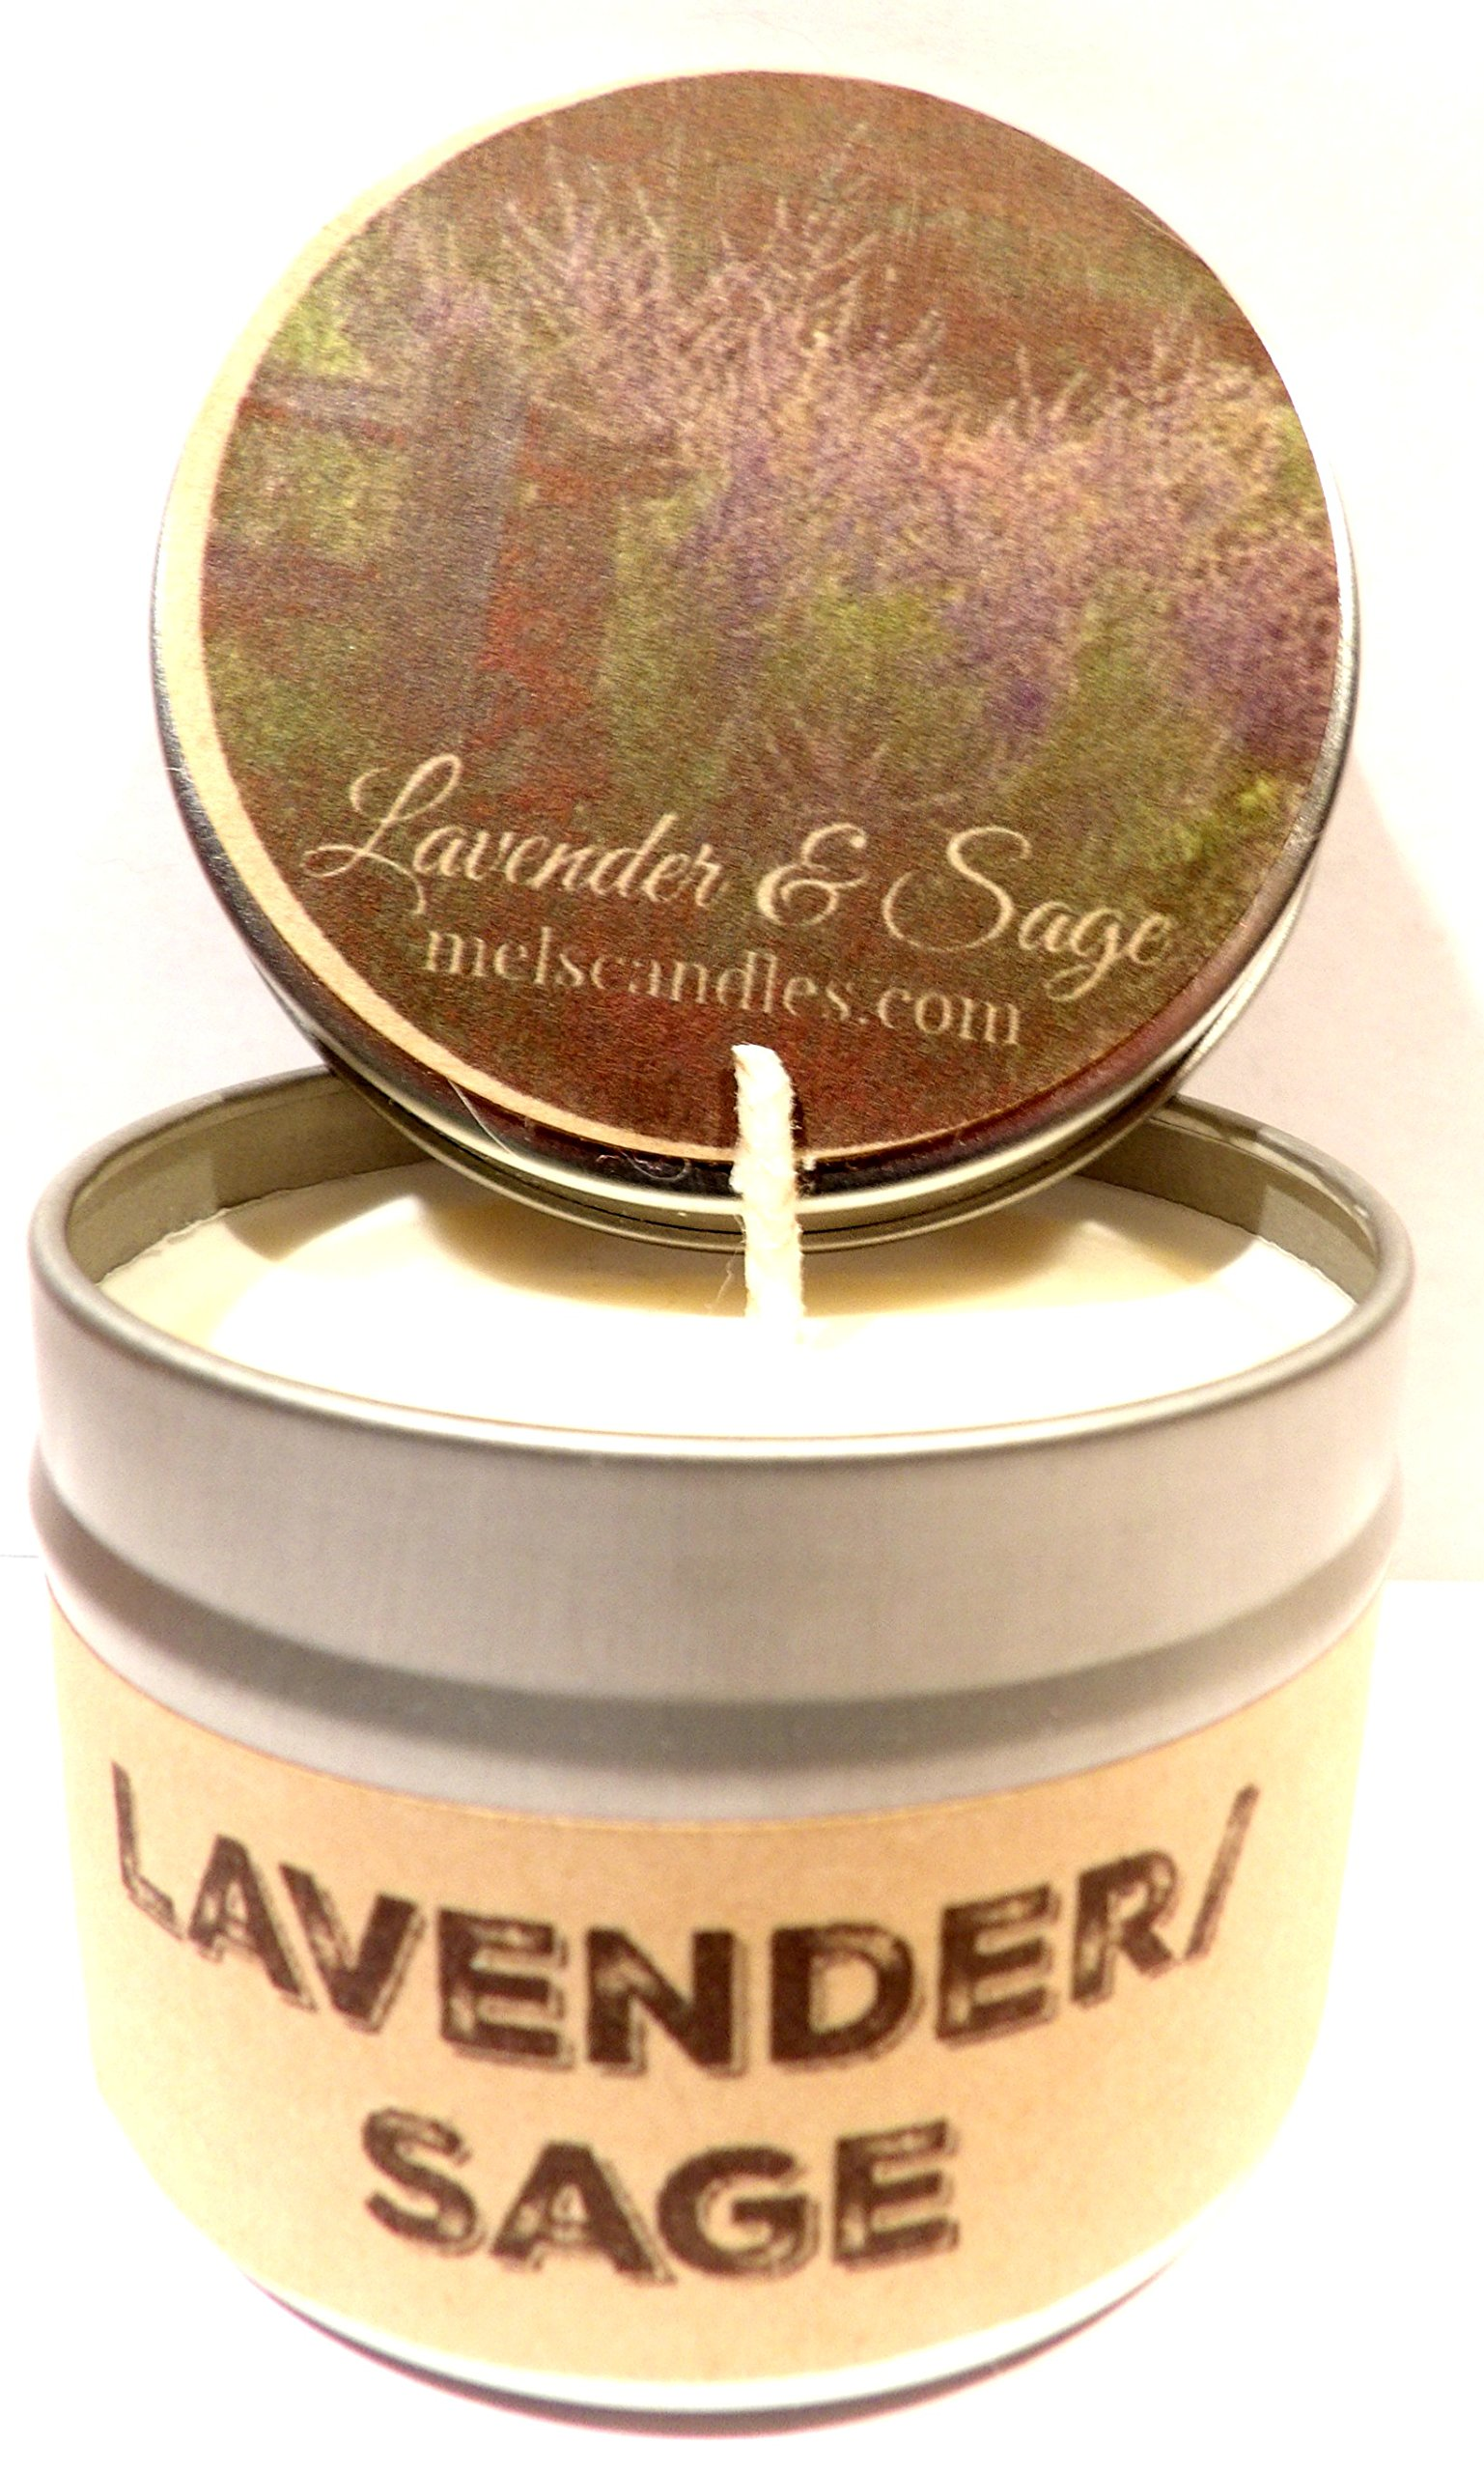 Lavender And Sage Scented 4 oz Soy Candle Handmade All Natural smells AMAZING!